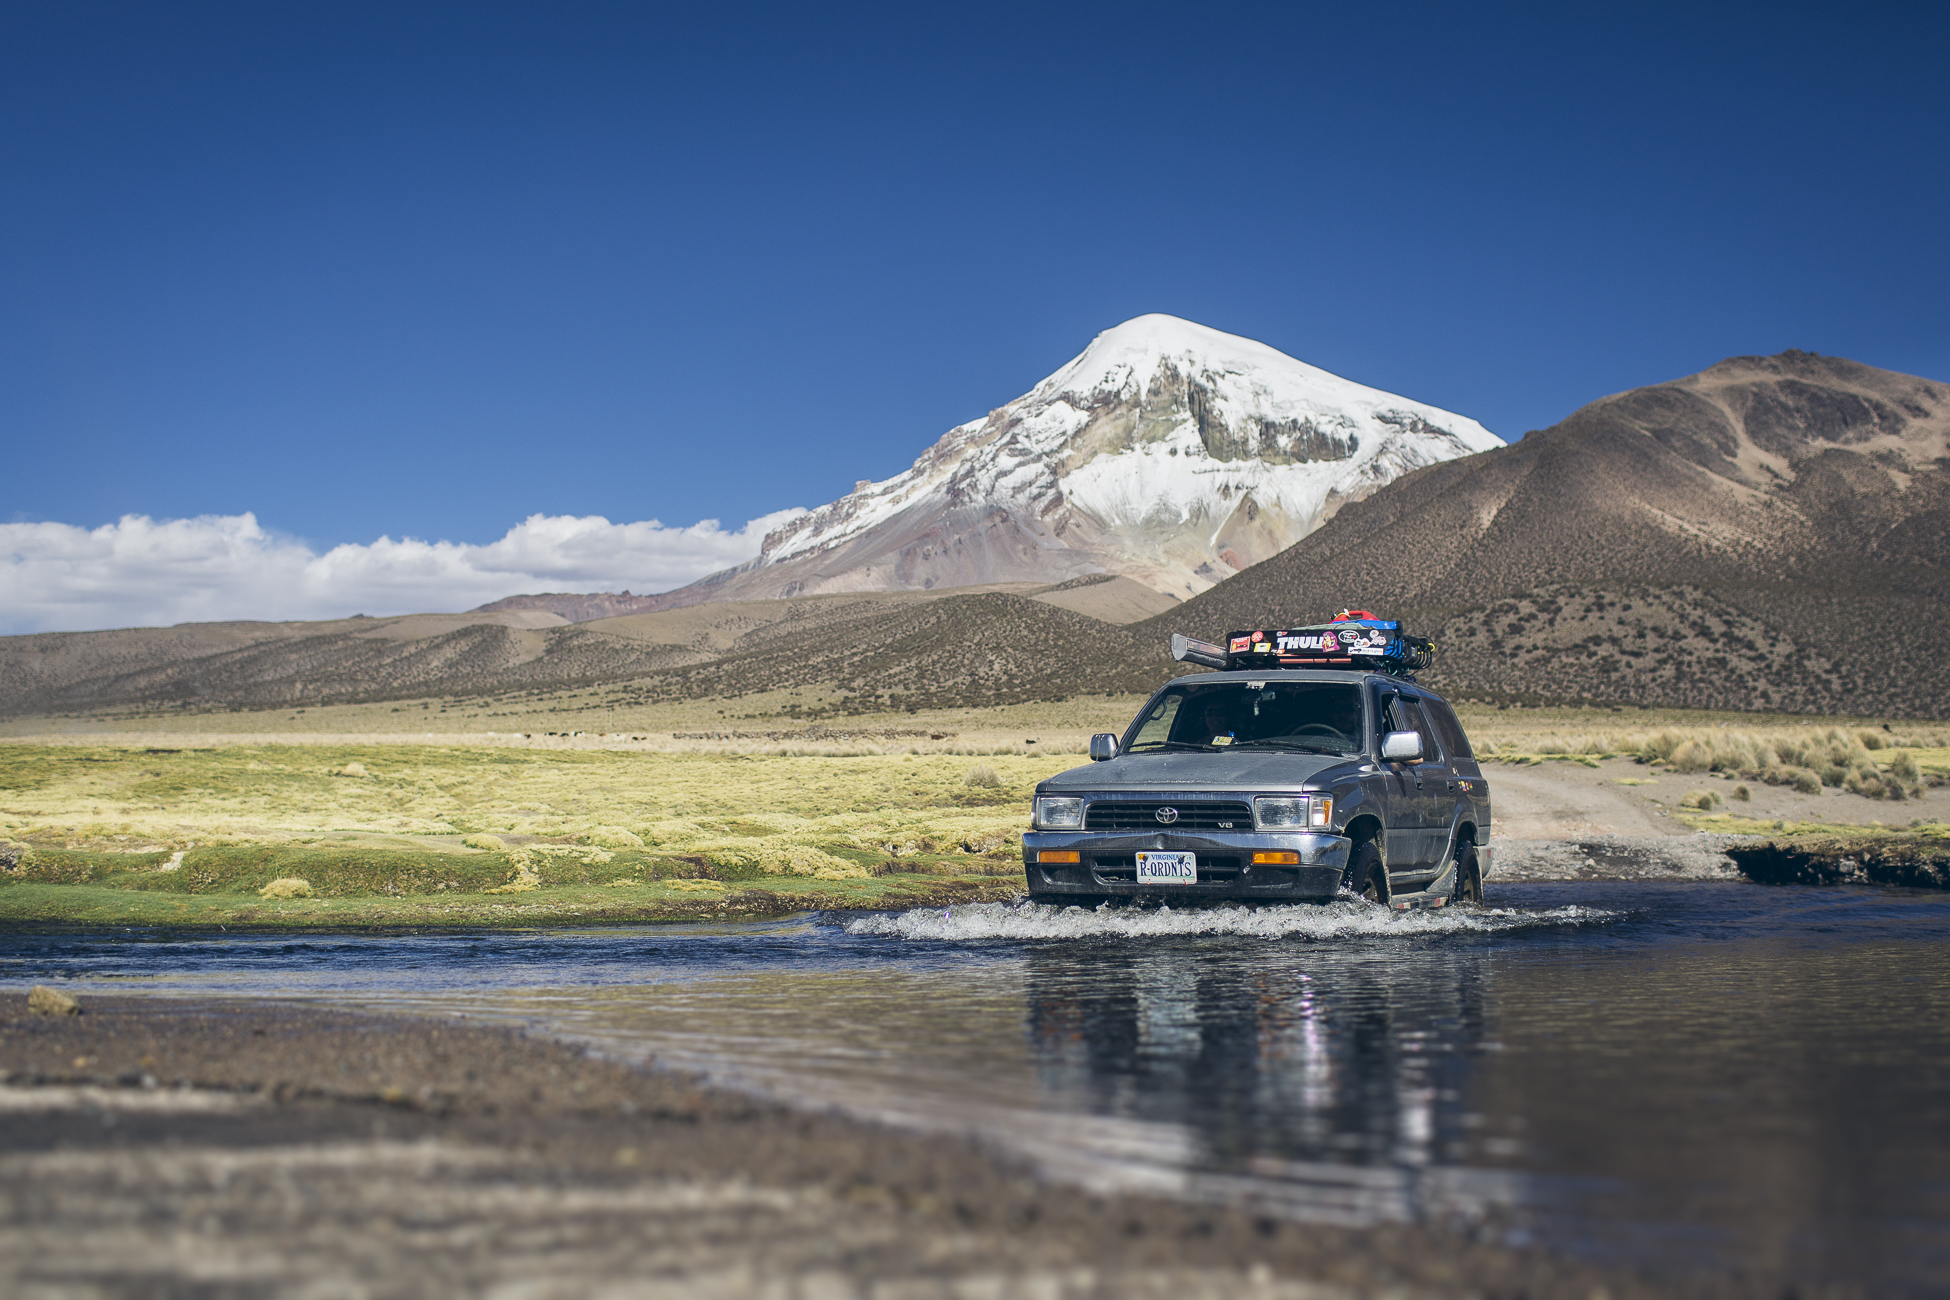 desktoglory_sajama_national_park-6